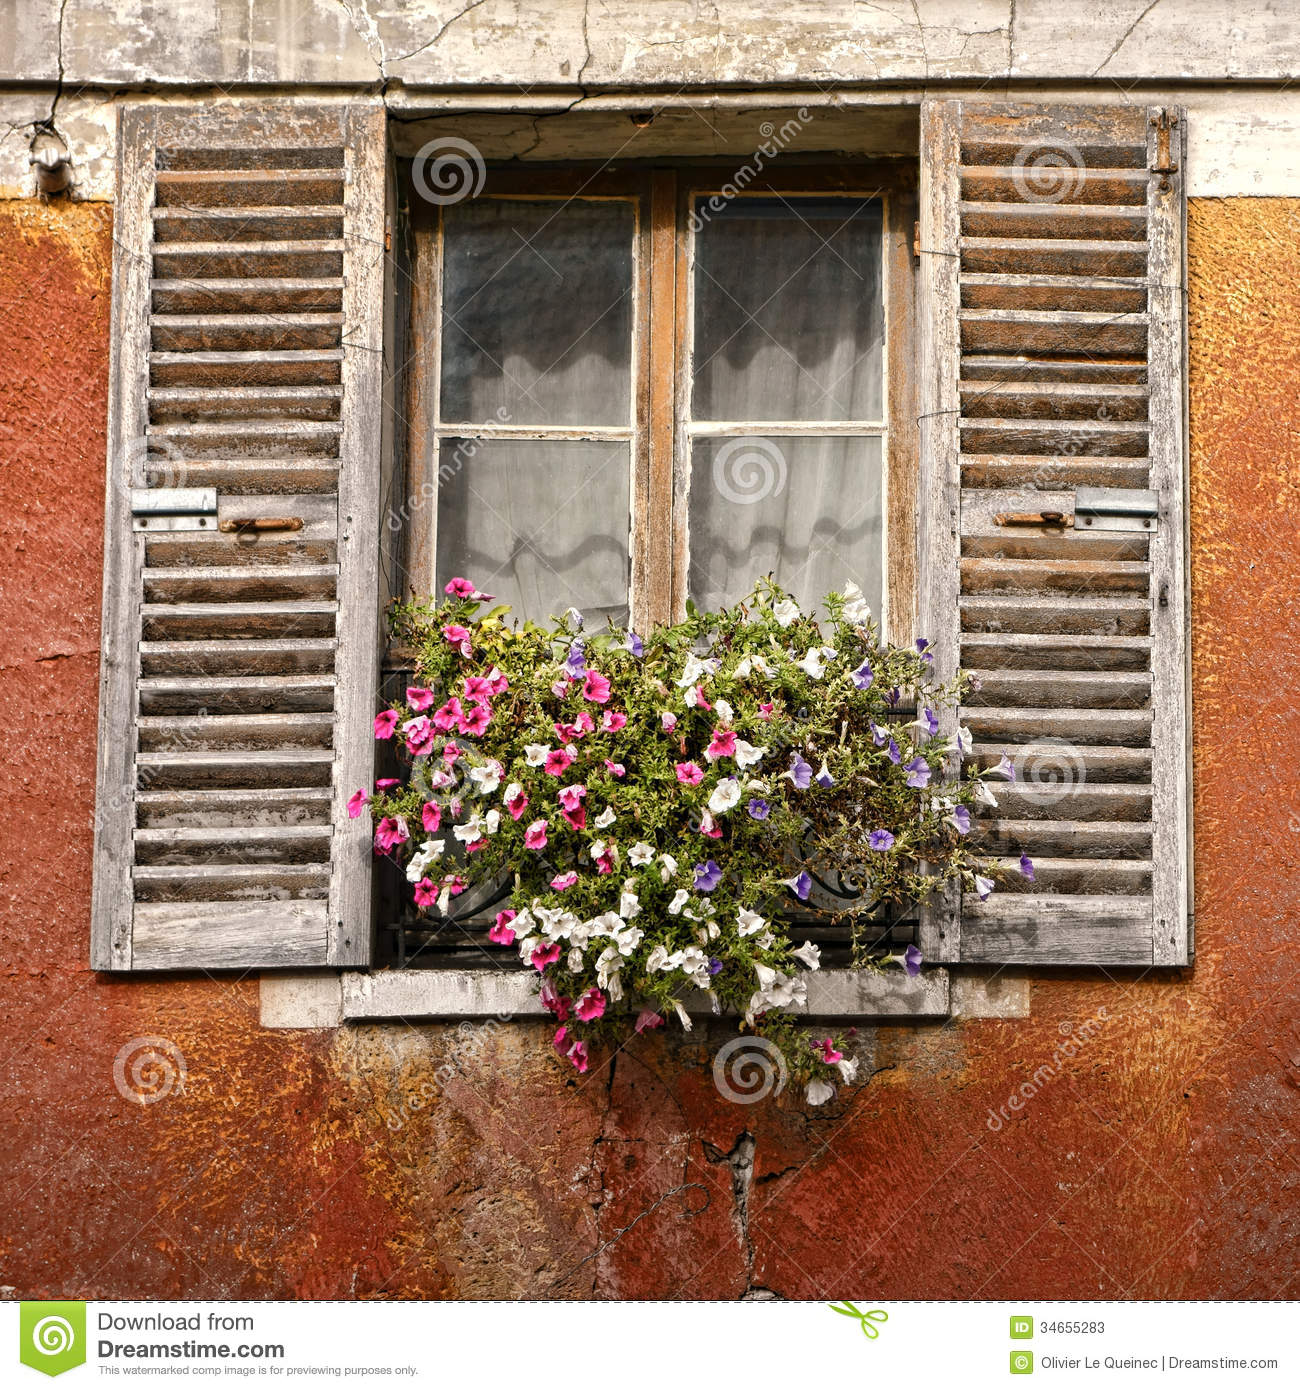 Stock Photos Old House Window Flowers Antique Shutters Wood Hanging Vintage French Small Village France Image34655283 furthermore Exterior Stone Wall additionally Bed And Breakfast Savannah Ga Tybee Island Savannah Beach moreover Give Your Garage Door Major Curb Appeal For Under 10 also Detached Duplex Floor Plans. on carriage house beach